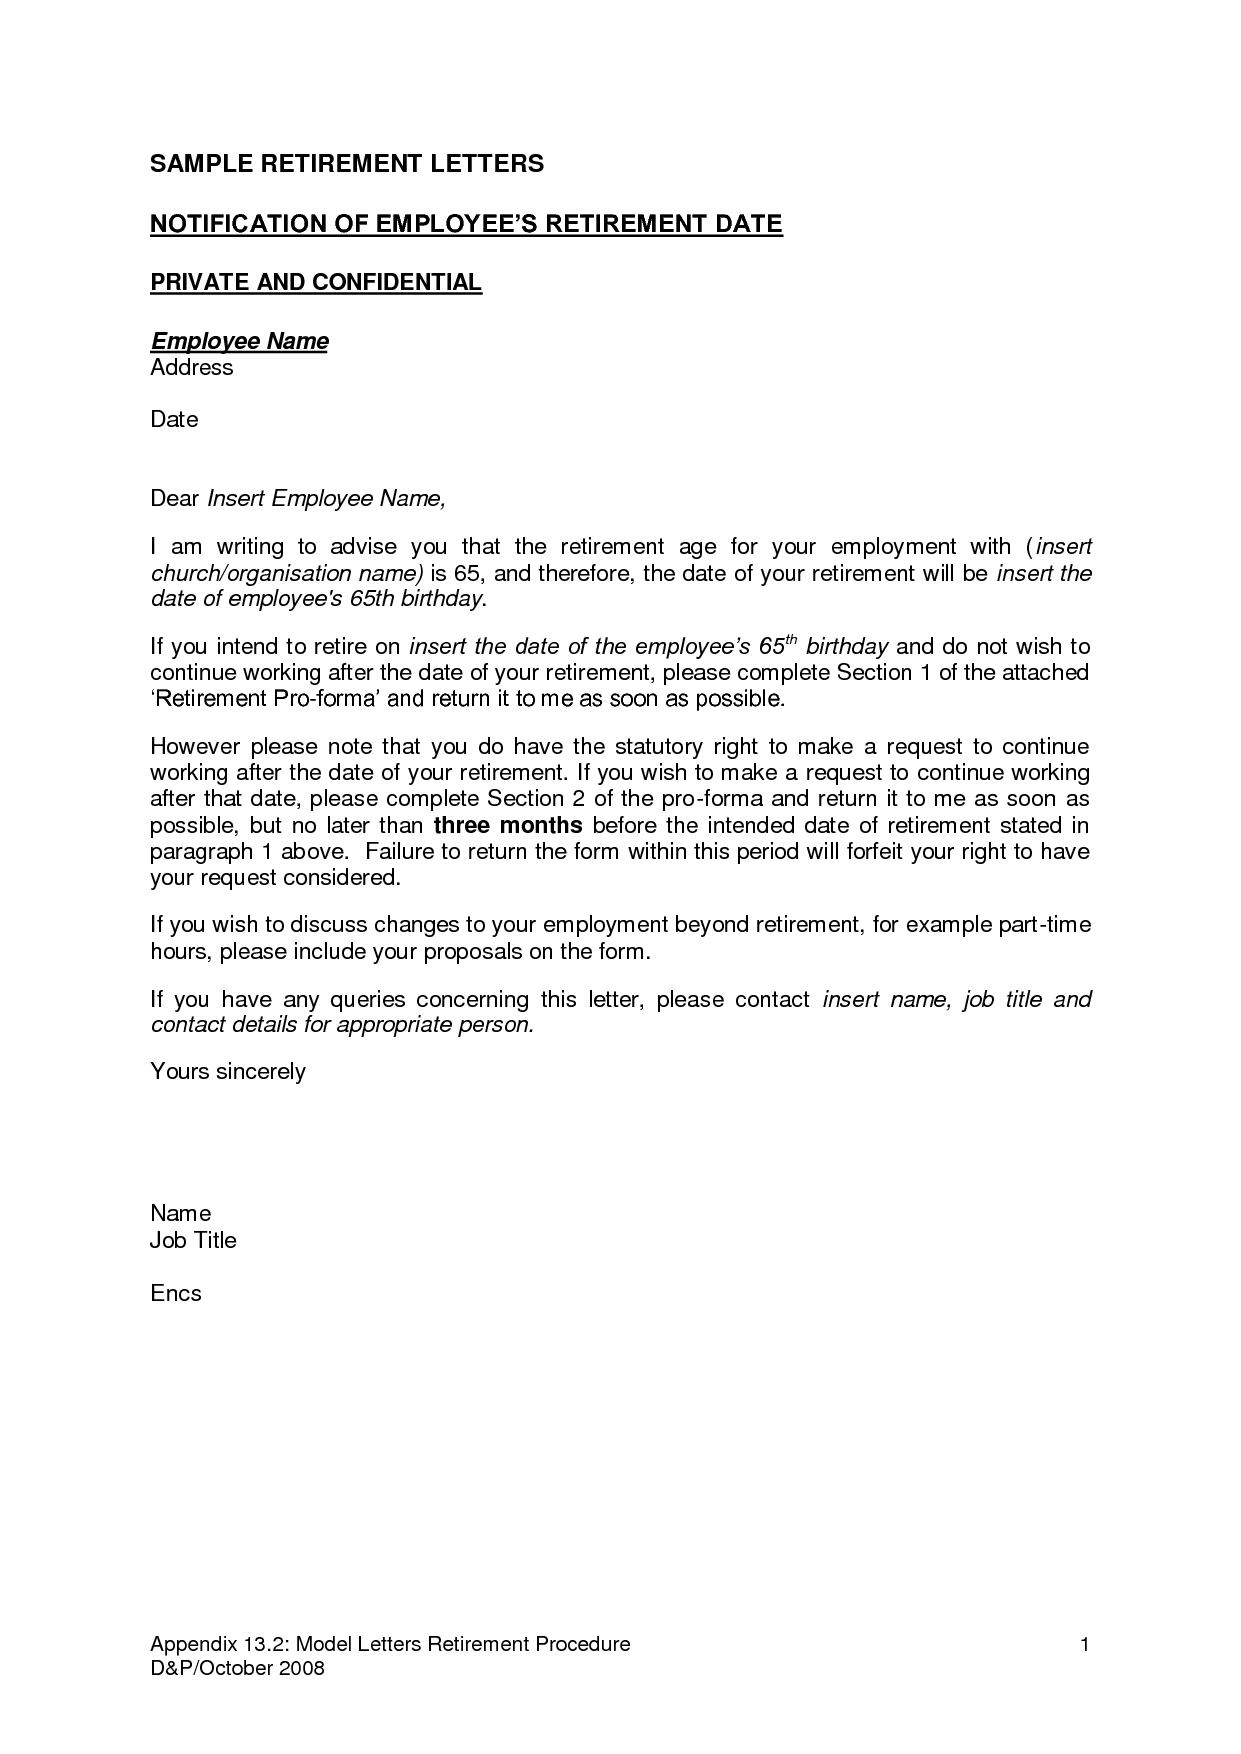 Resignation Letter Format Well Designed Retirement Ideas Writing